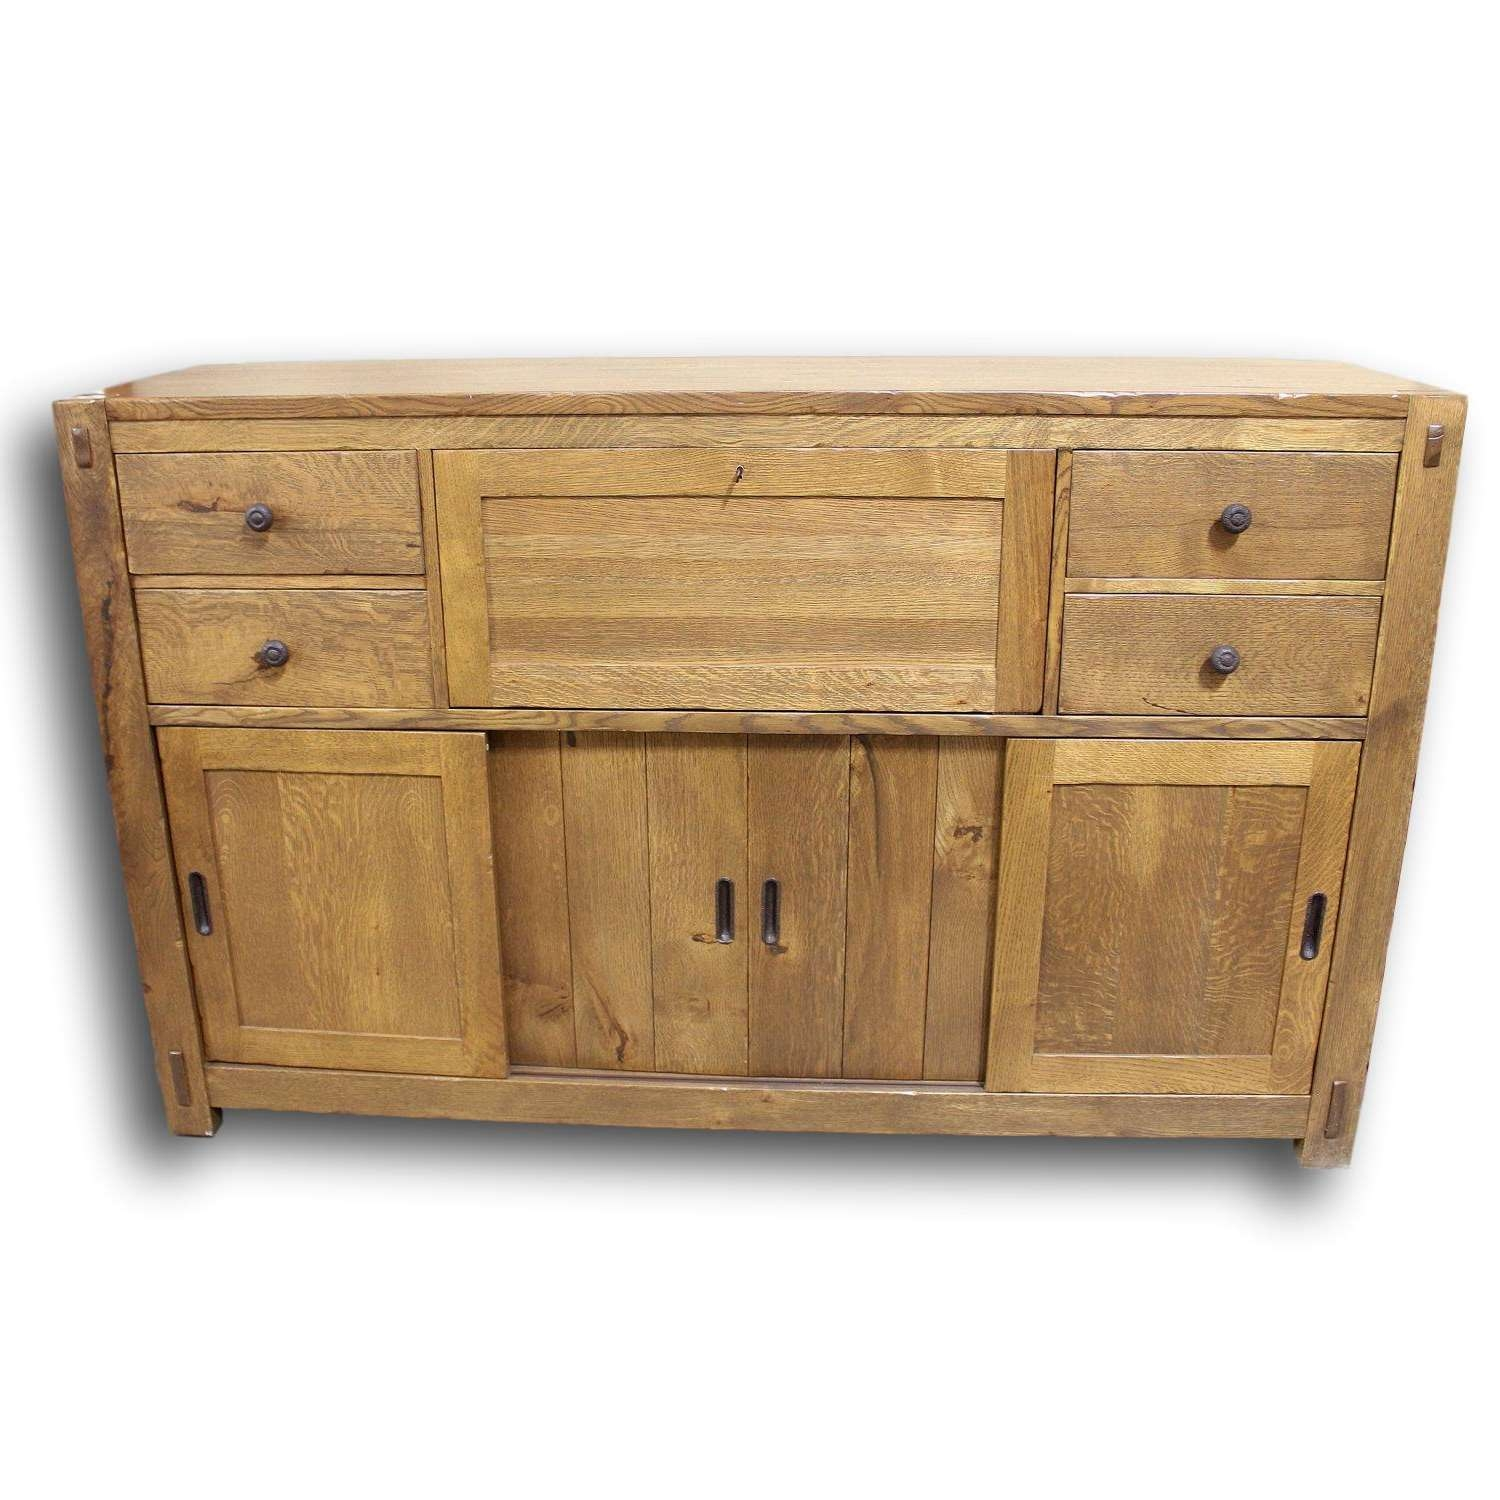 Stickley Oak Sideboard | Upscale Consignment Throughout Stickley Sideboards (View 17 of 20)